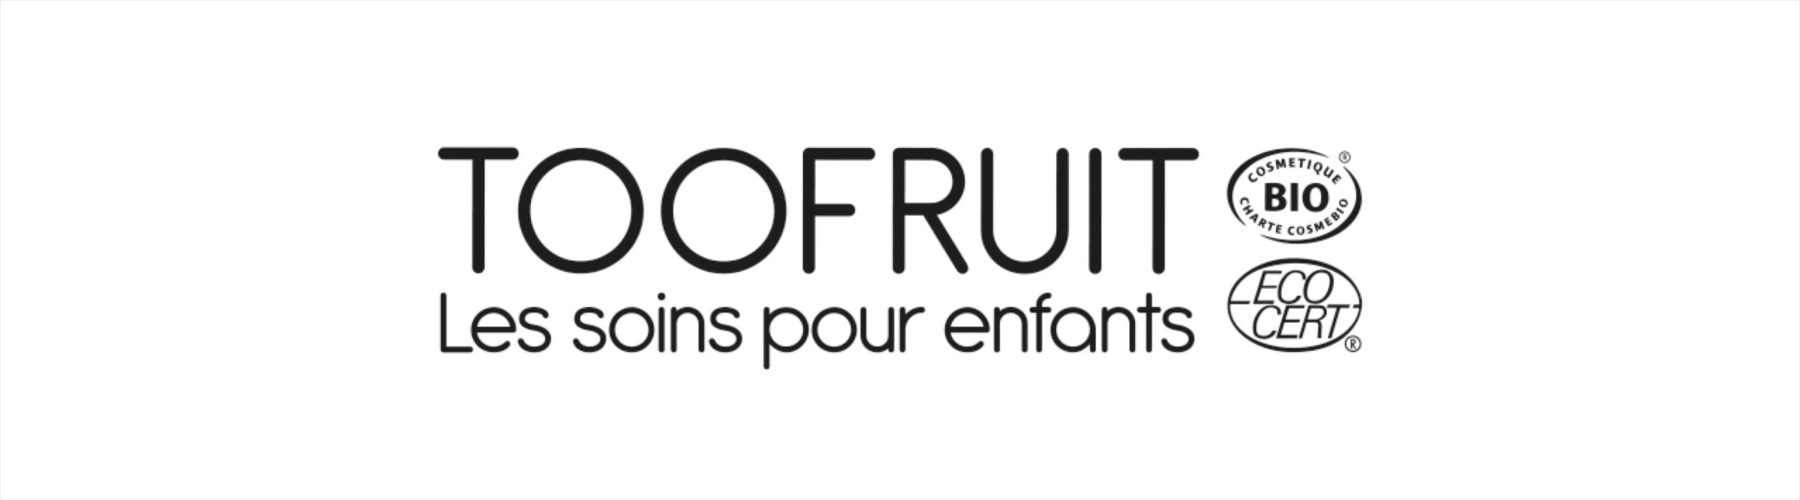 soin enfants too fruit